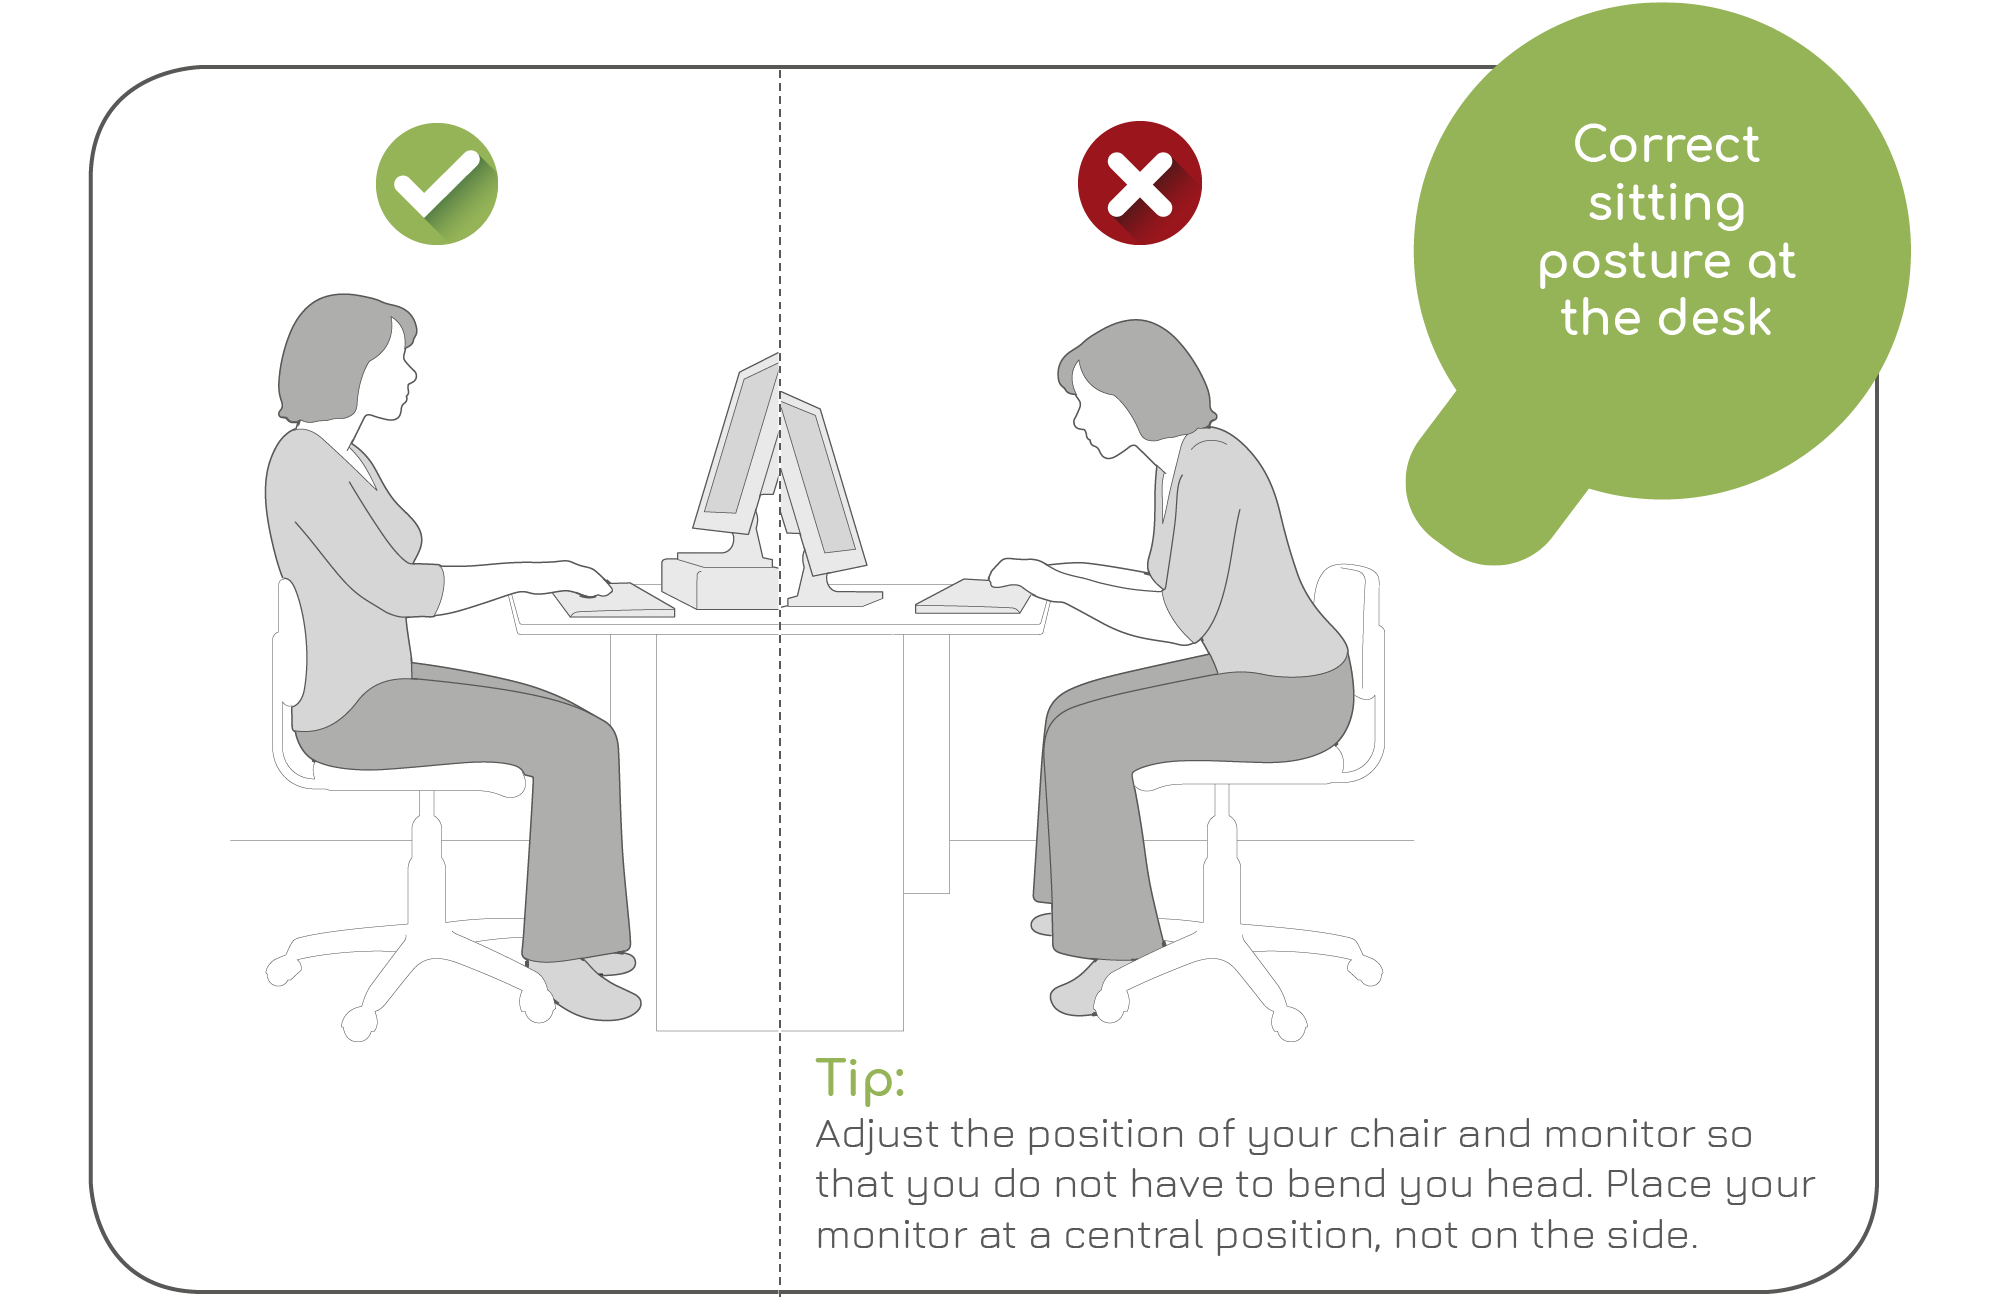 Correct sitting posture at the desk